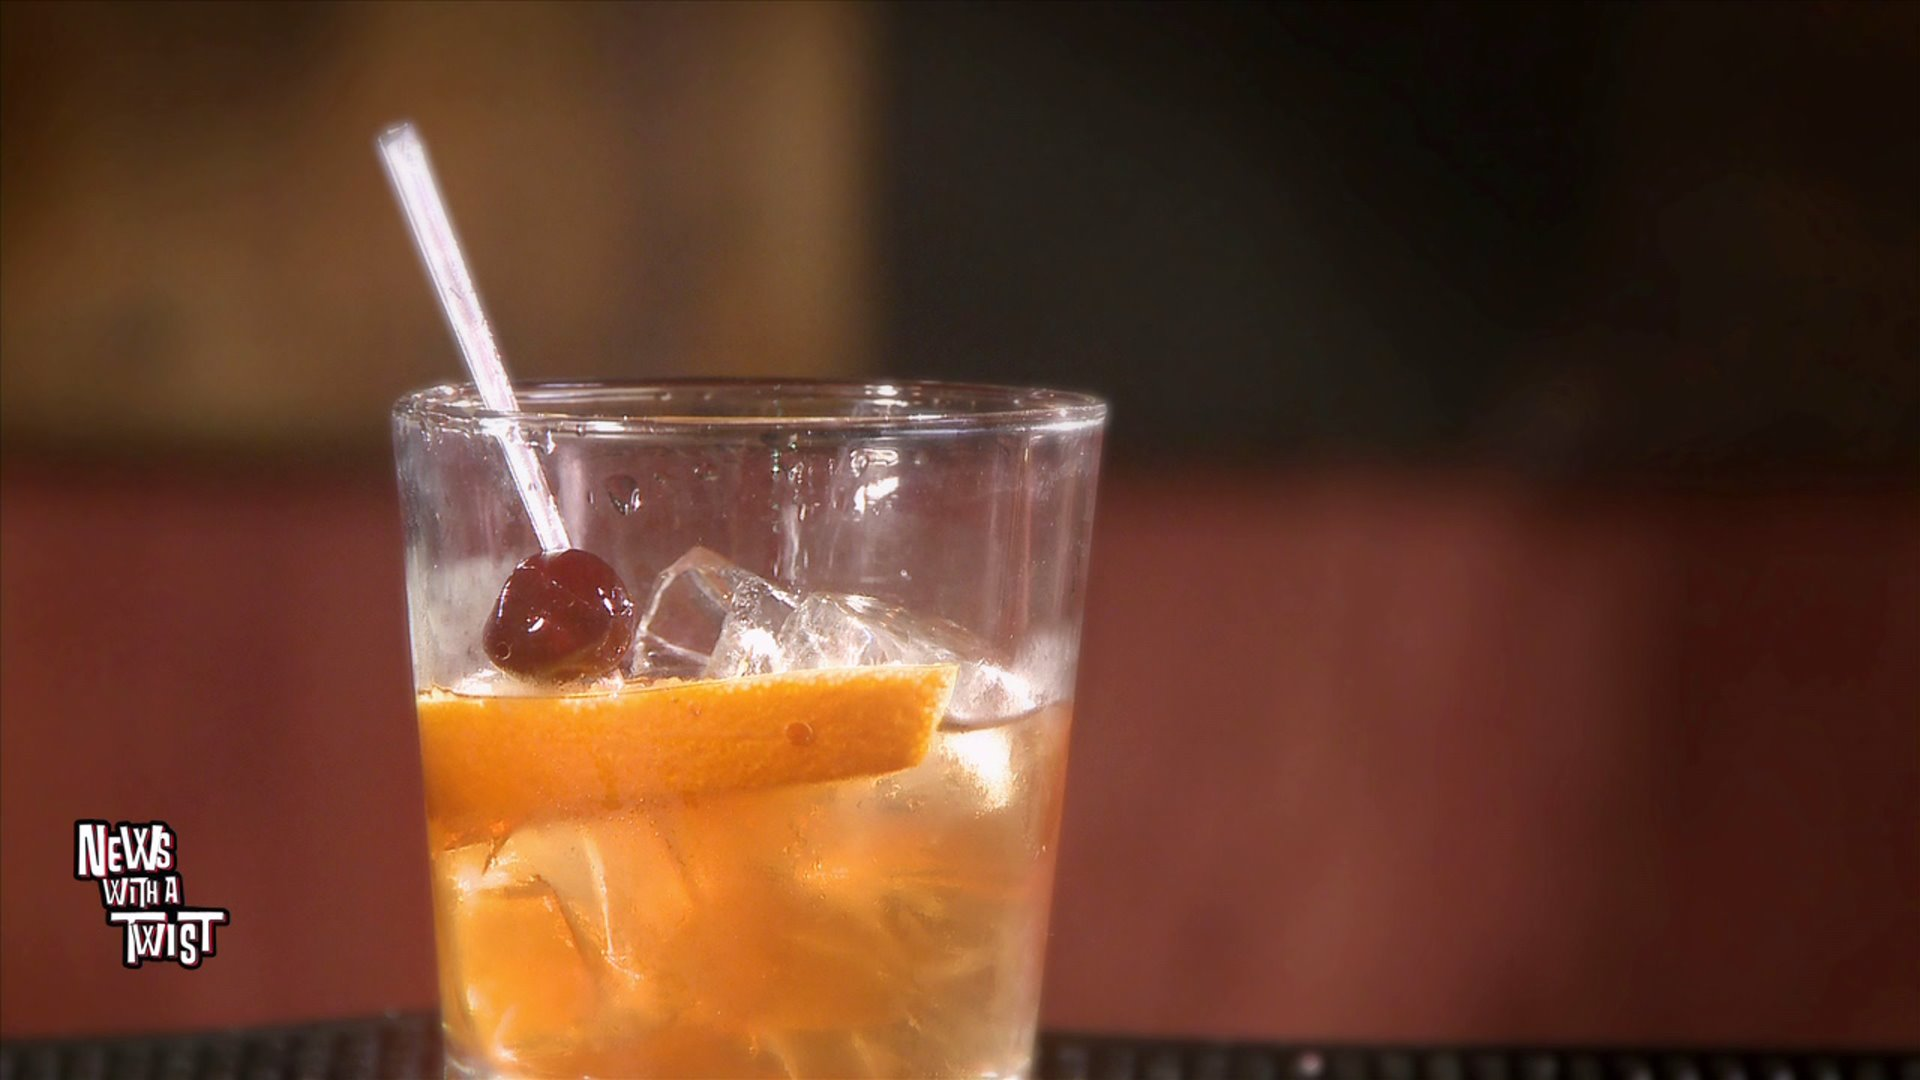 Drink of the Day: New Fashioned